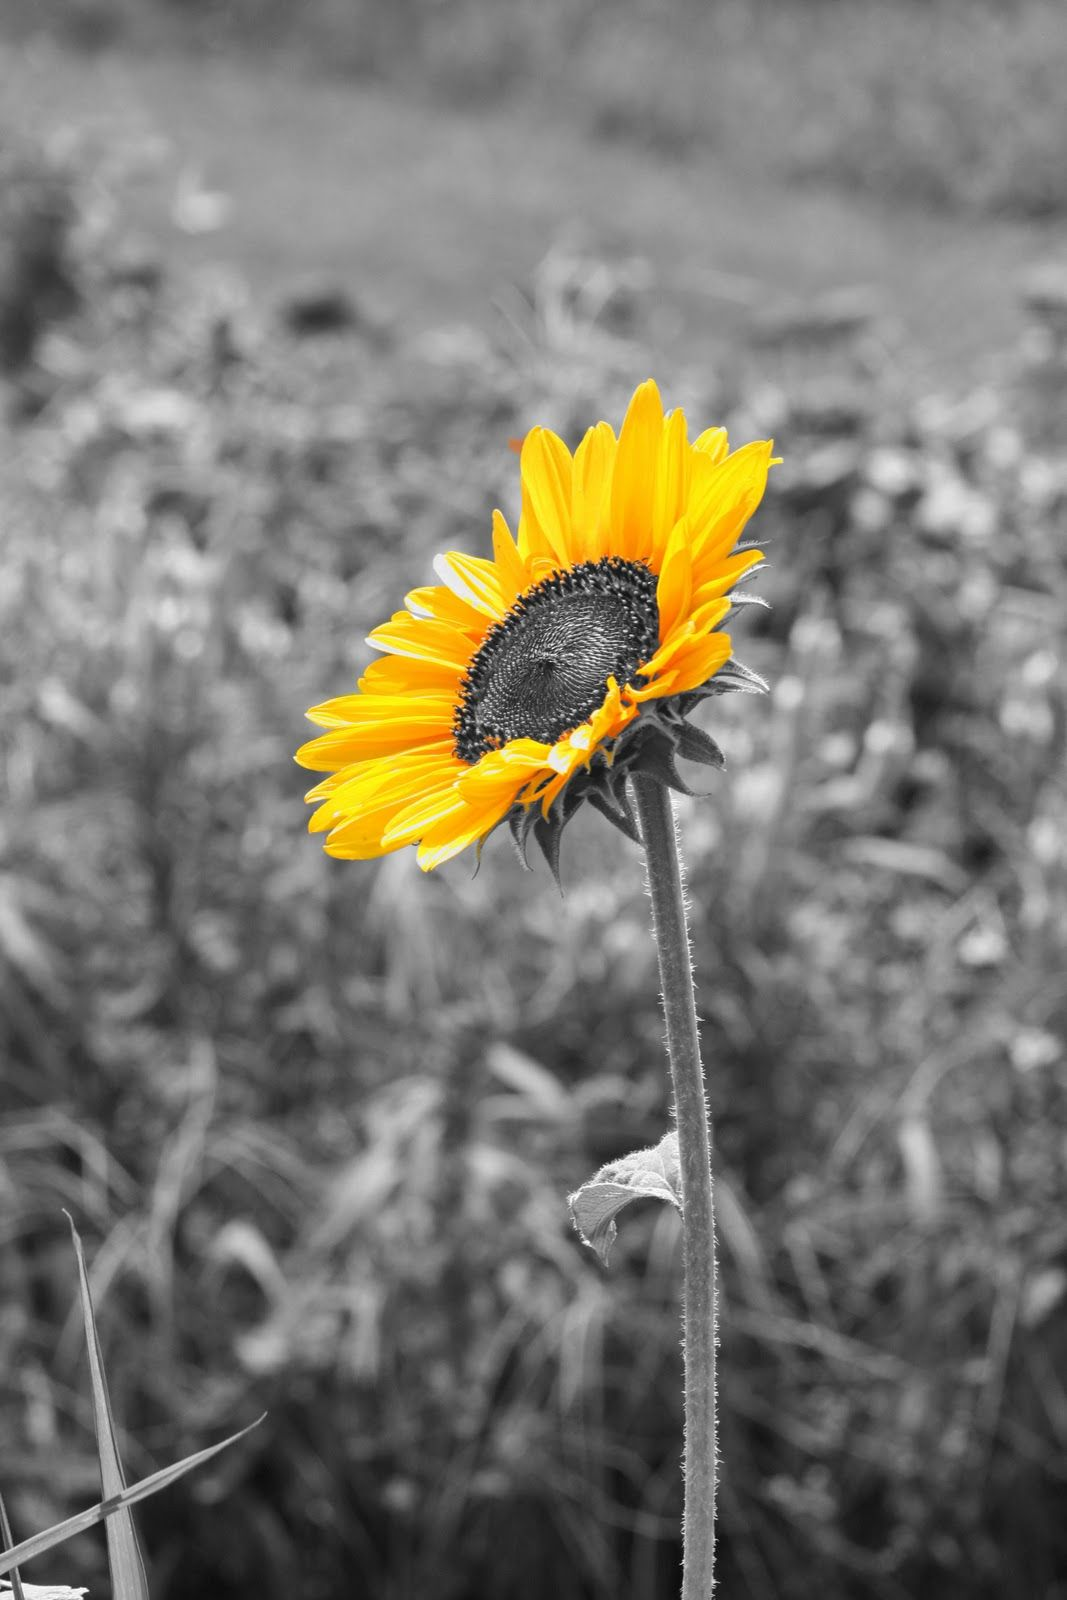 black and white nature photography with color accents